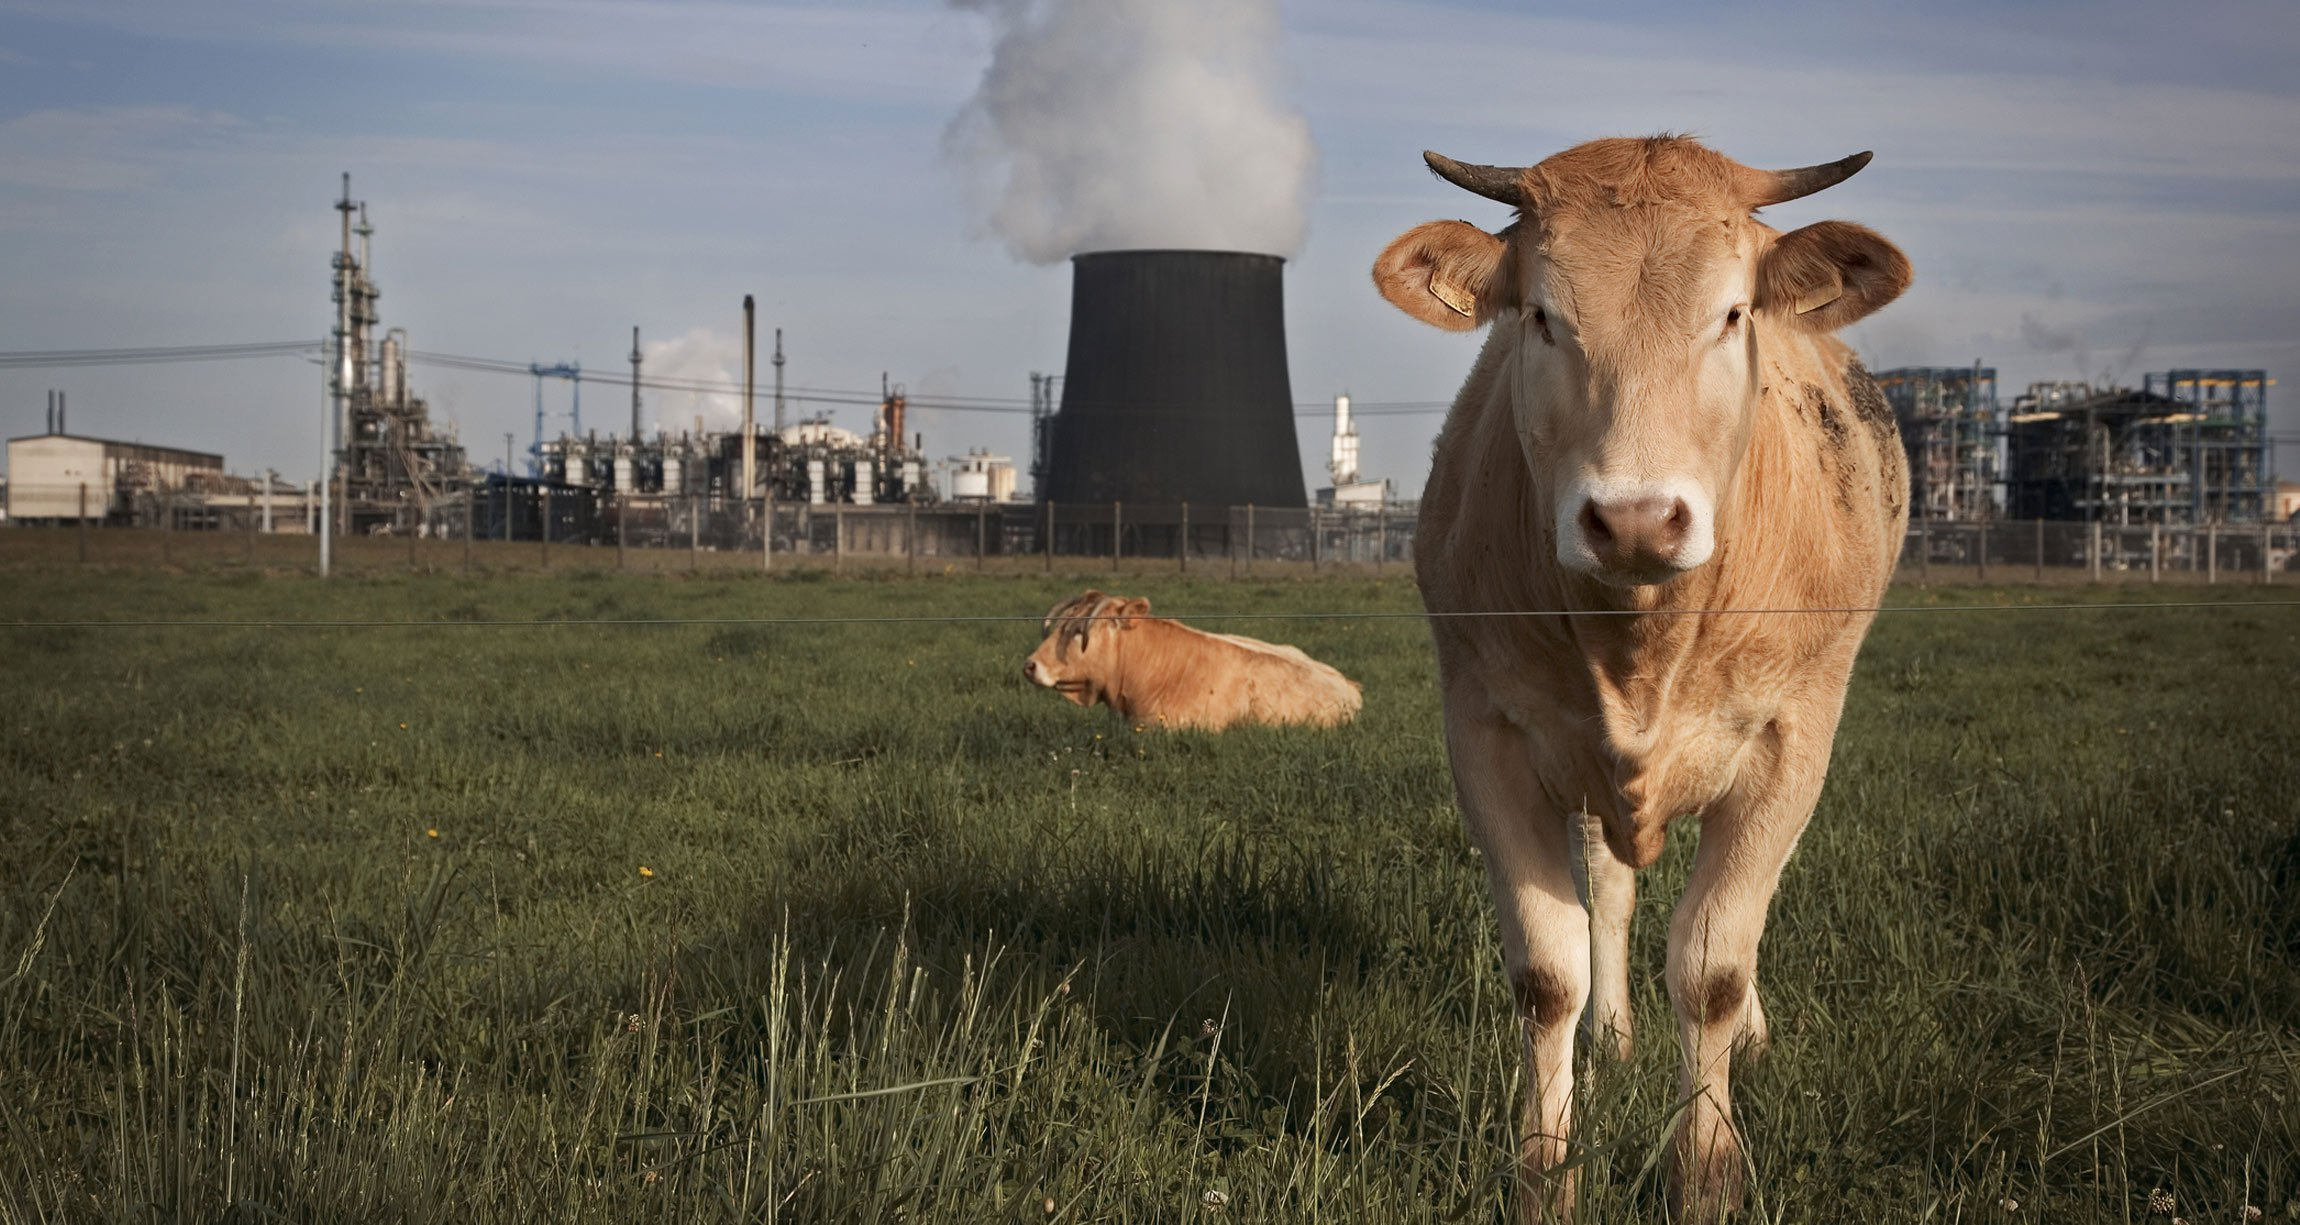 Cows in a field in front of a power plant.